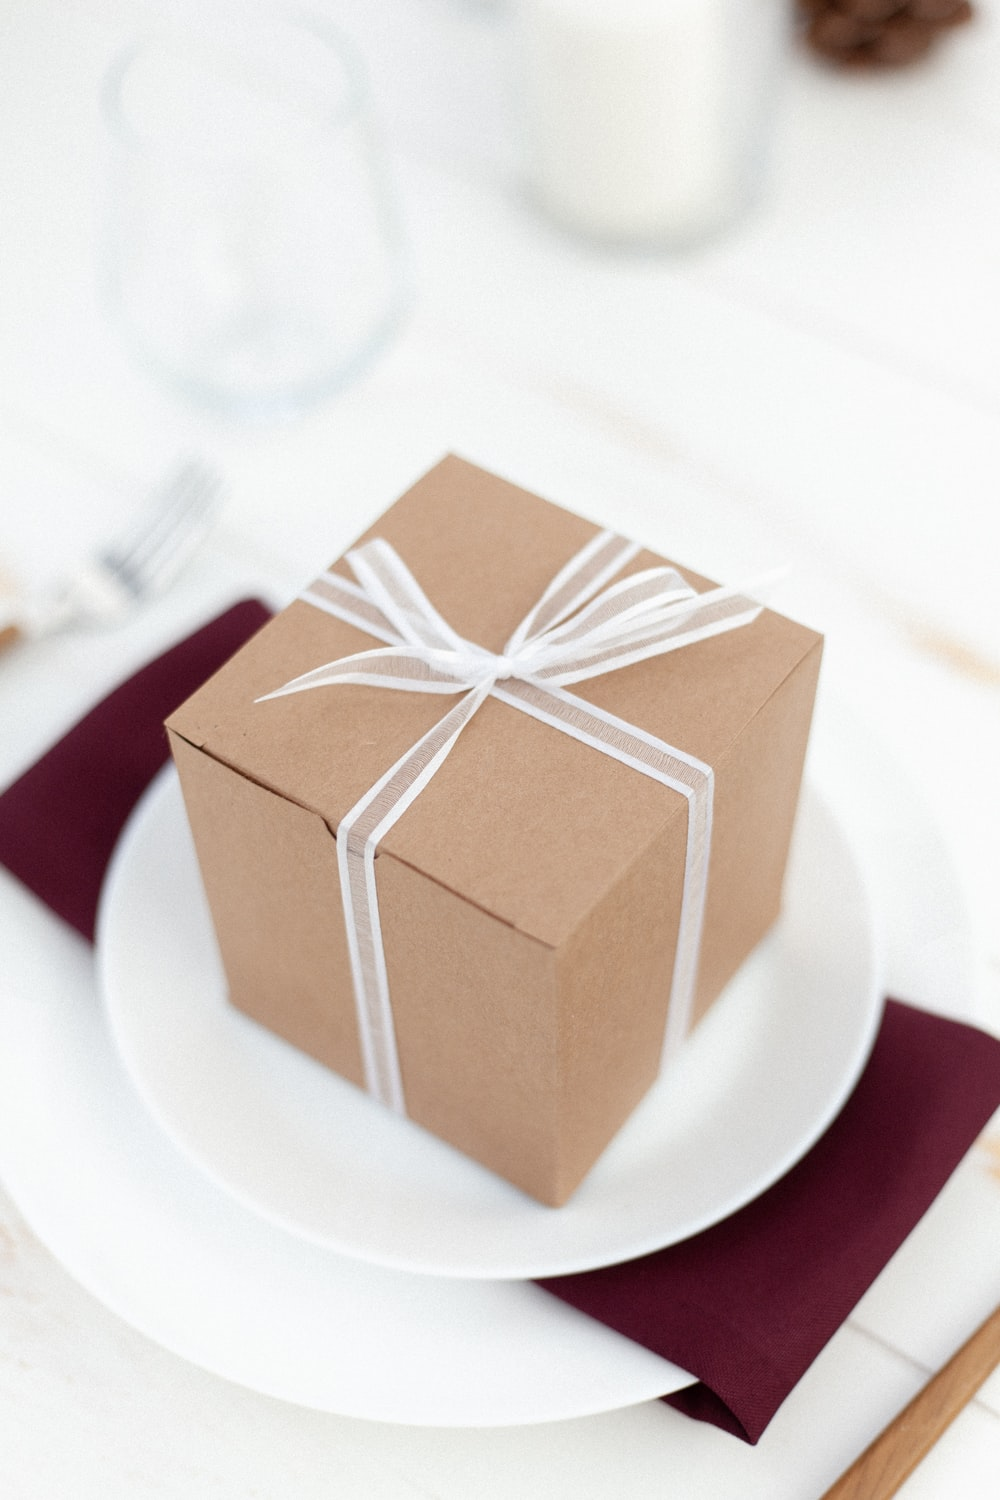 brown and white box on white ceramic plate